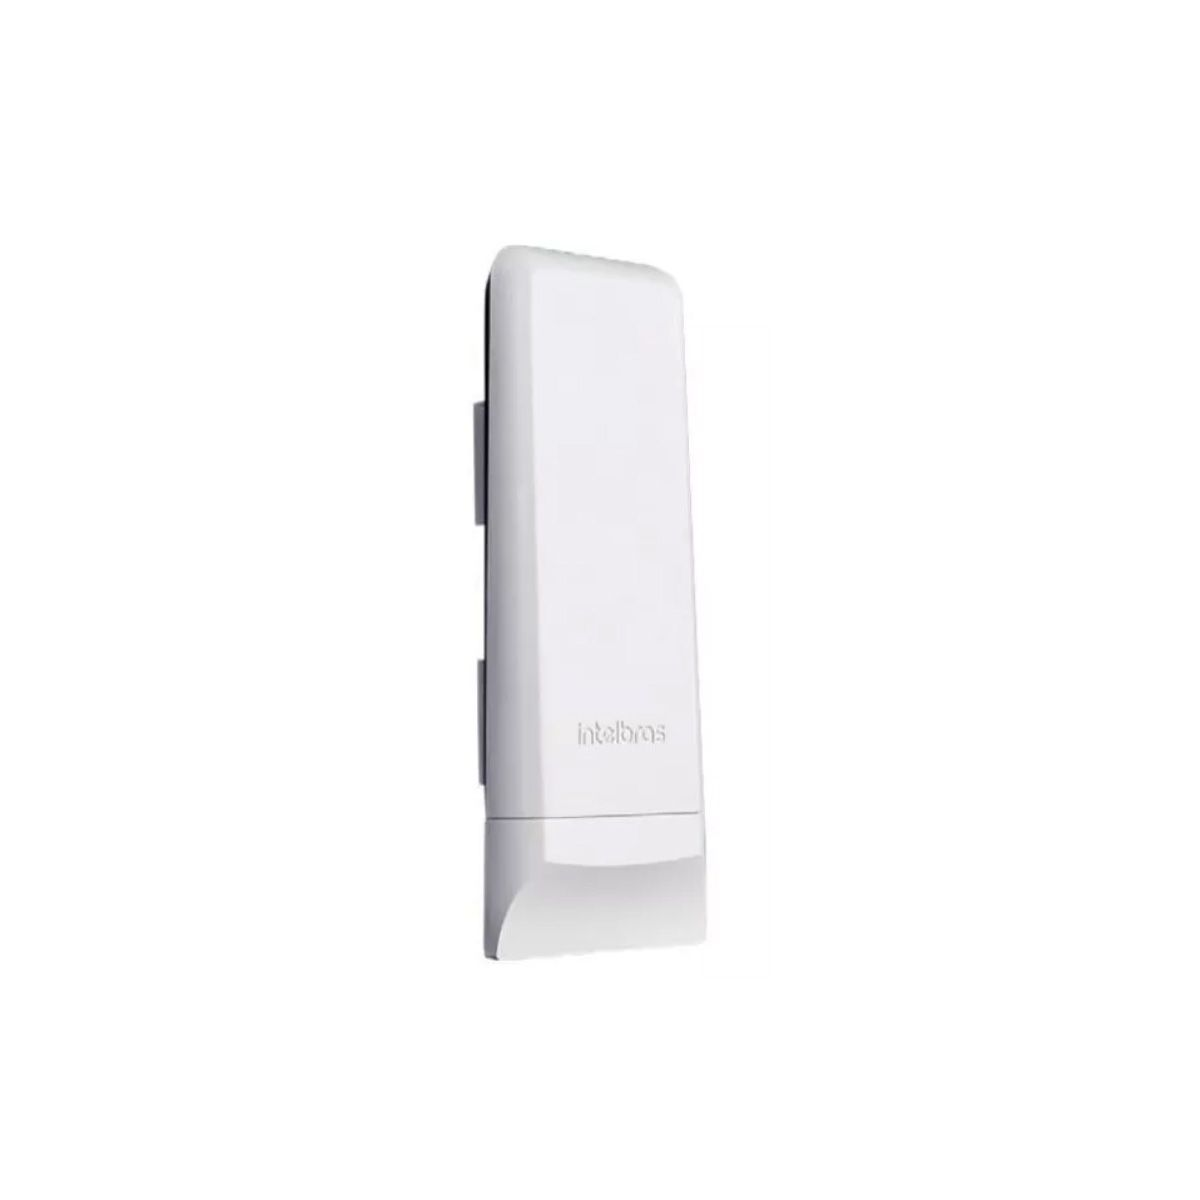 Rádio Antena Cpe Wireless Intelbras Wom 5a Siso 5 Ghz 16 Dbi